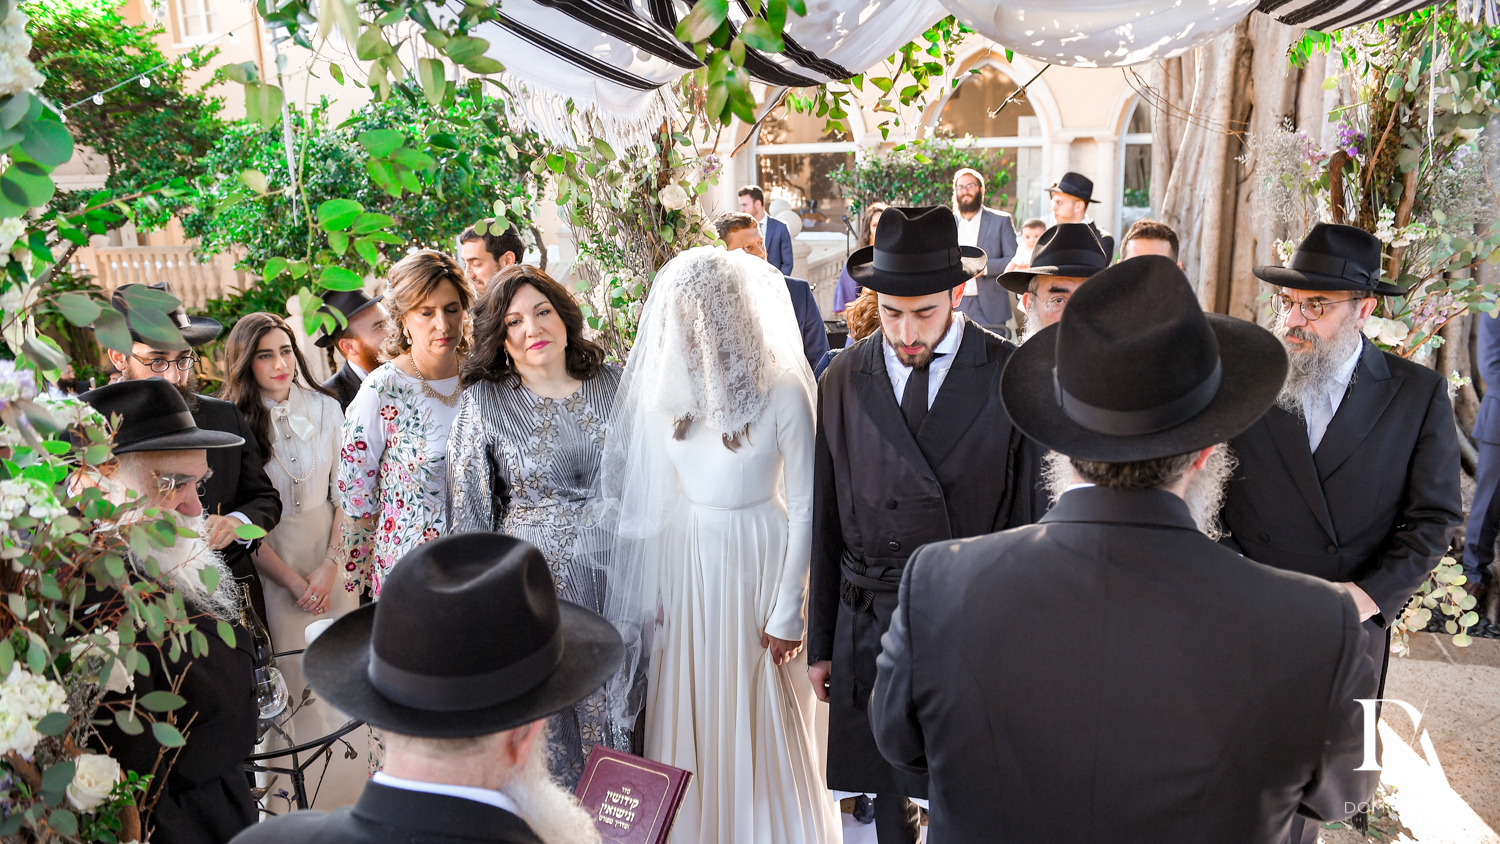 orthodox ceremony at Hasidic Jewish Wedding at The Addison in Boca Raton by Domino Arts Photography